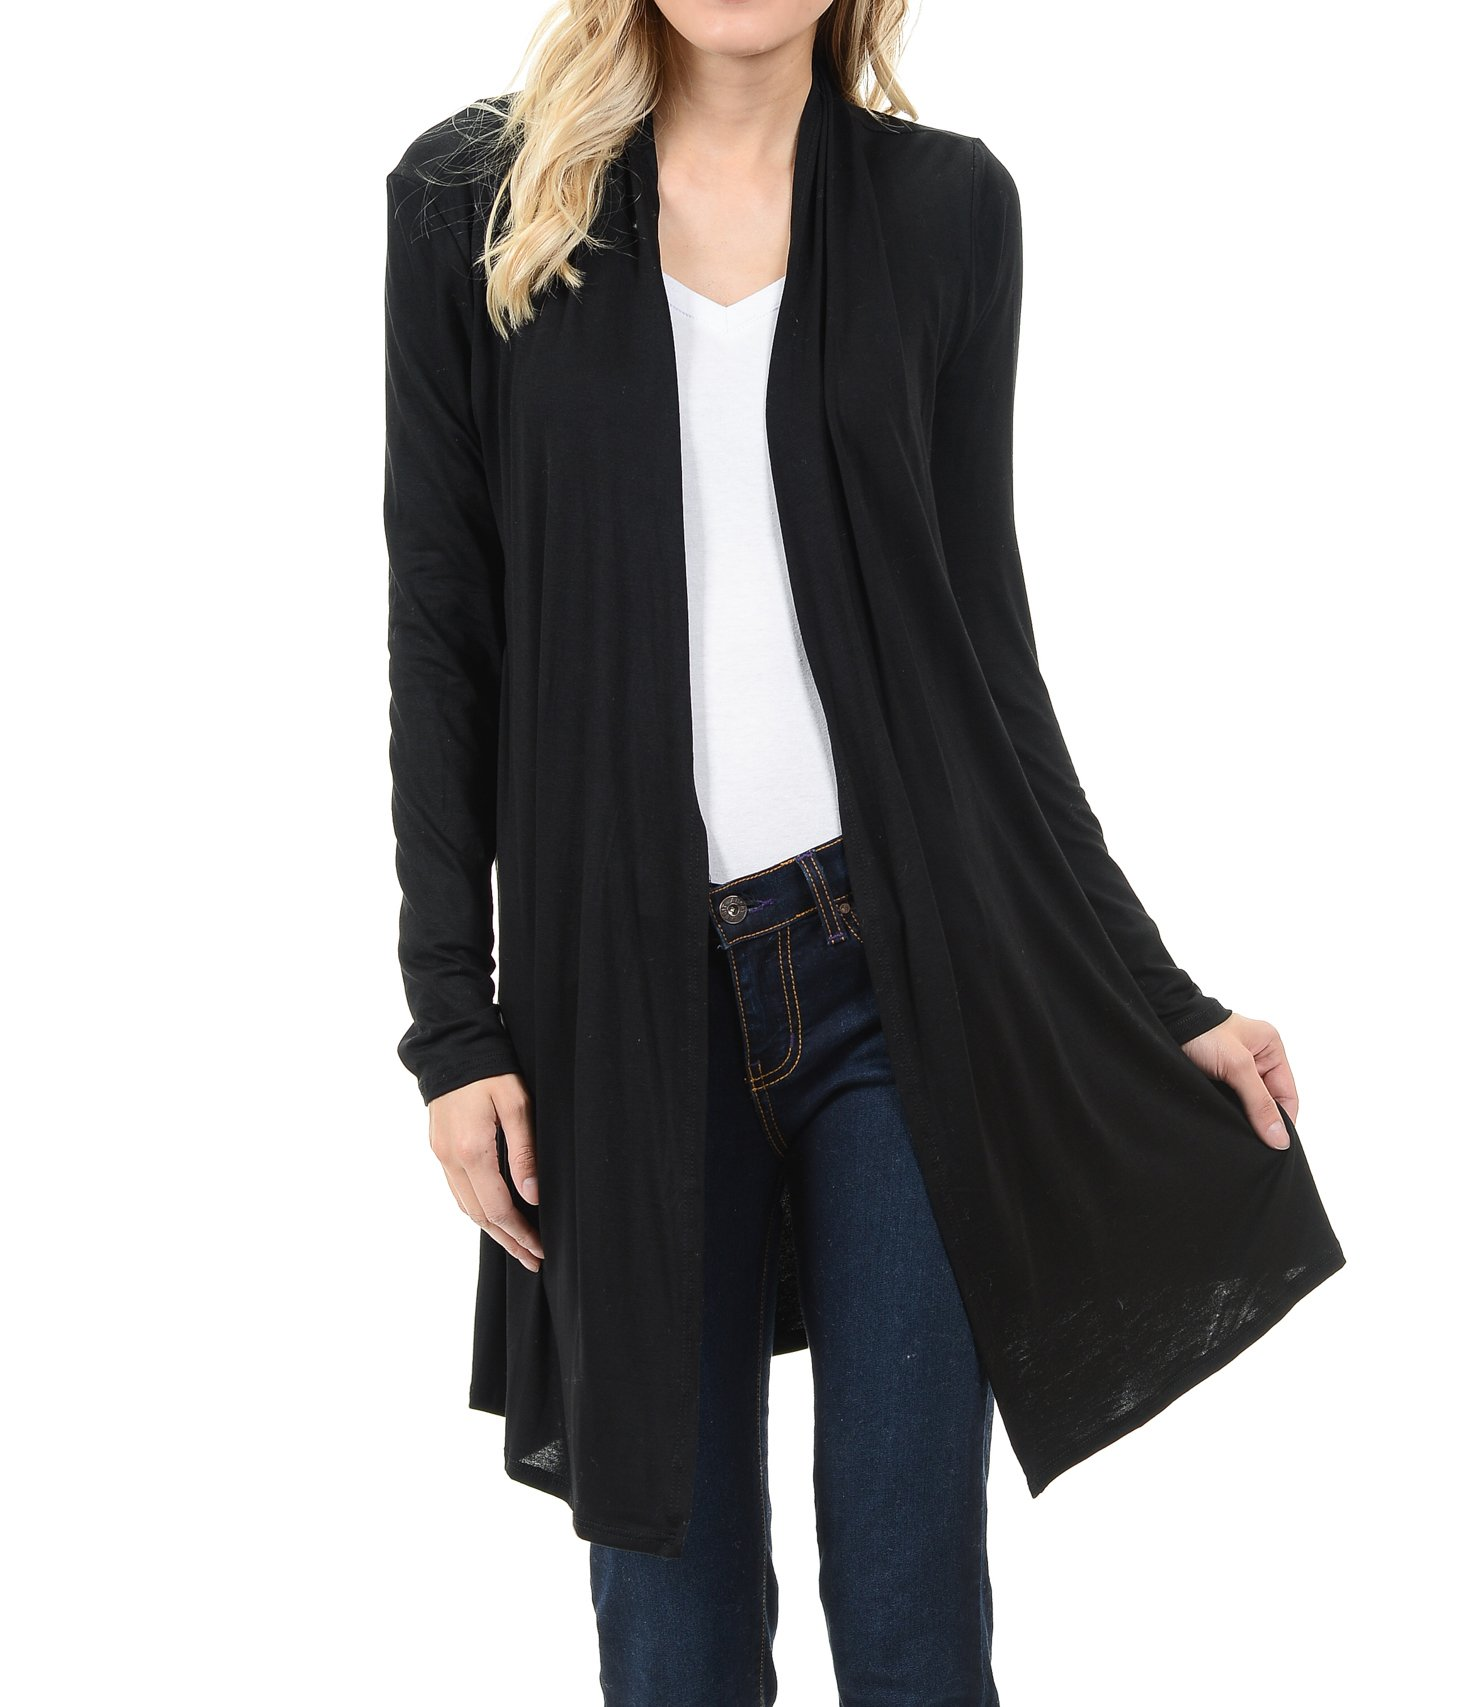 EttelLut Long Open Front Lightweight Soft Knit L/Sleeve Cardigan Sweaters Regular and Plus Size Black XXL